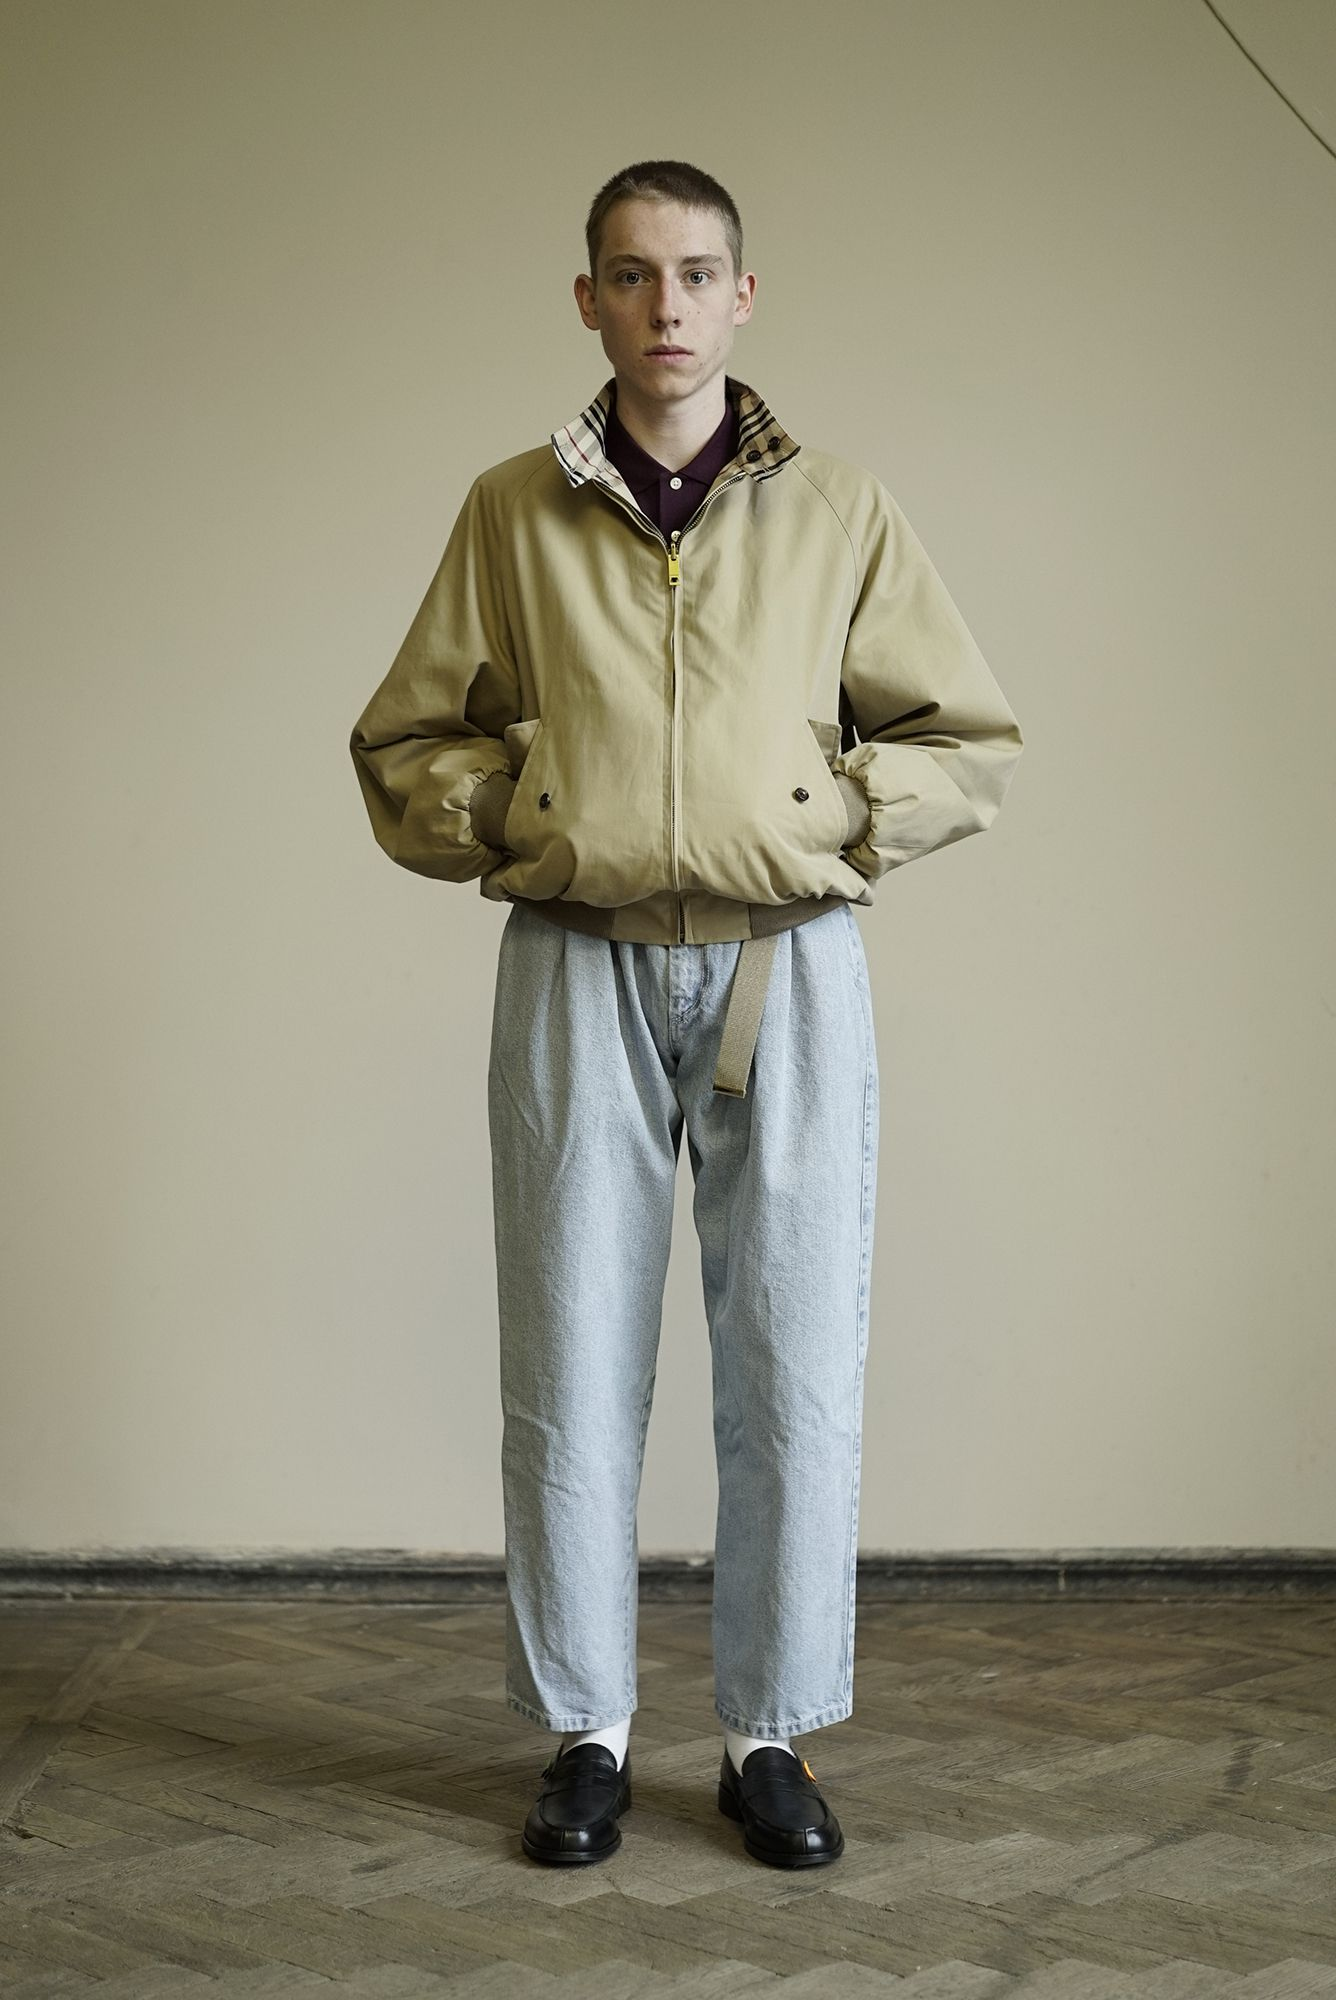 Gosha Rubchinskiy will present his next collection in Ekaterinburg, Russia's fourth largest city.